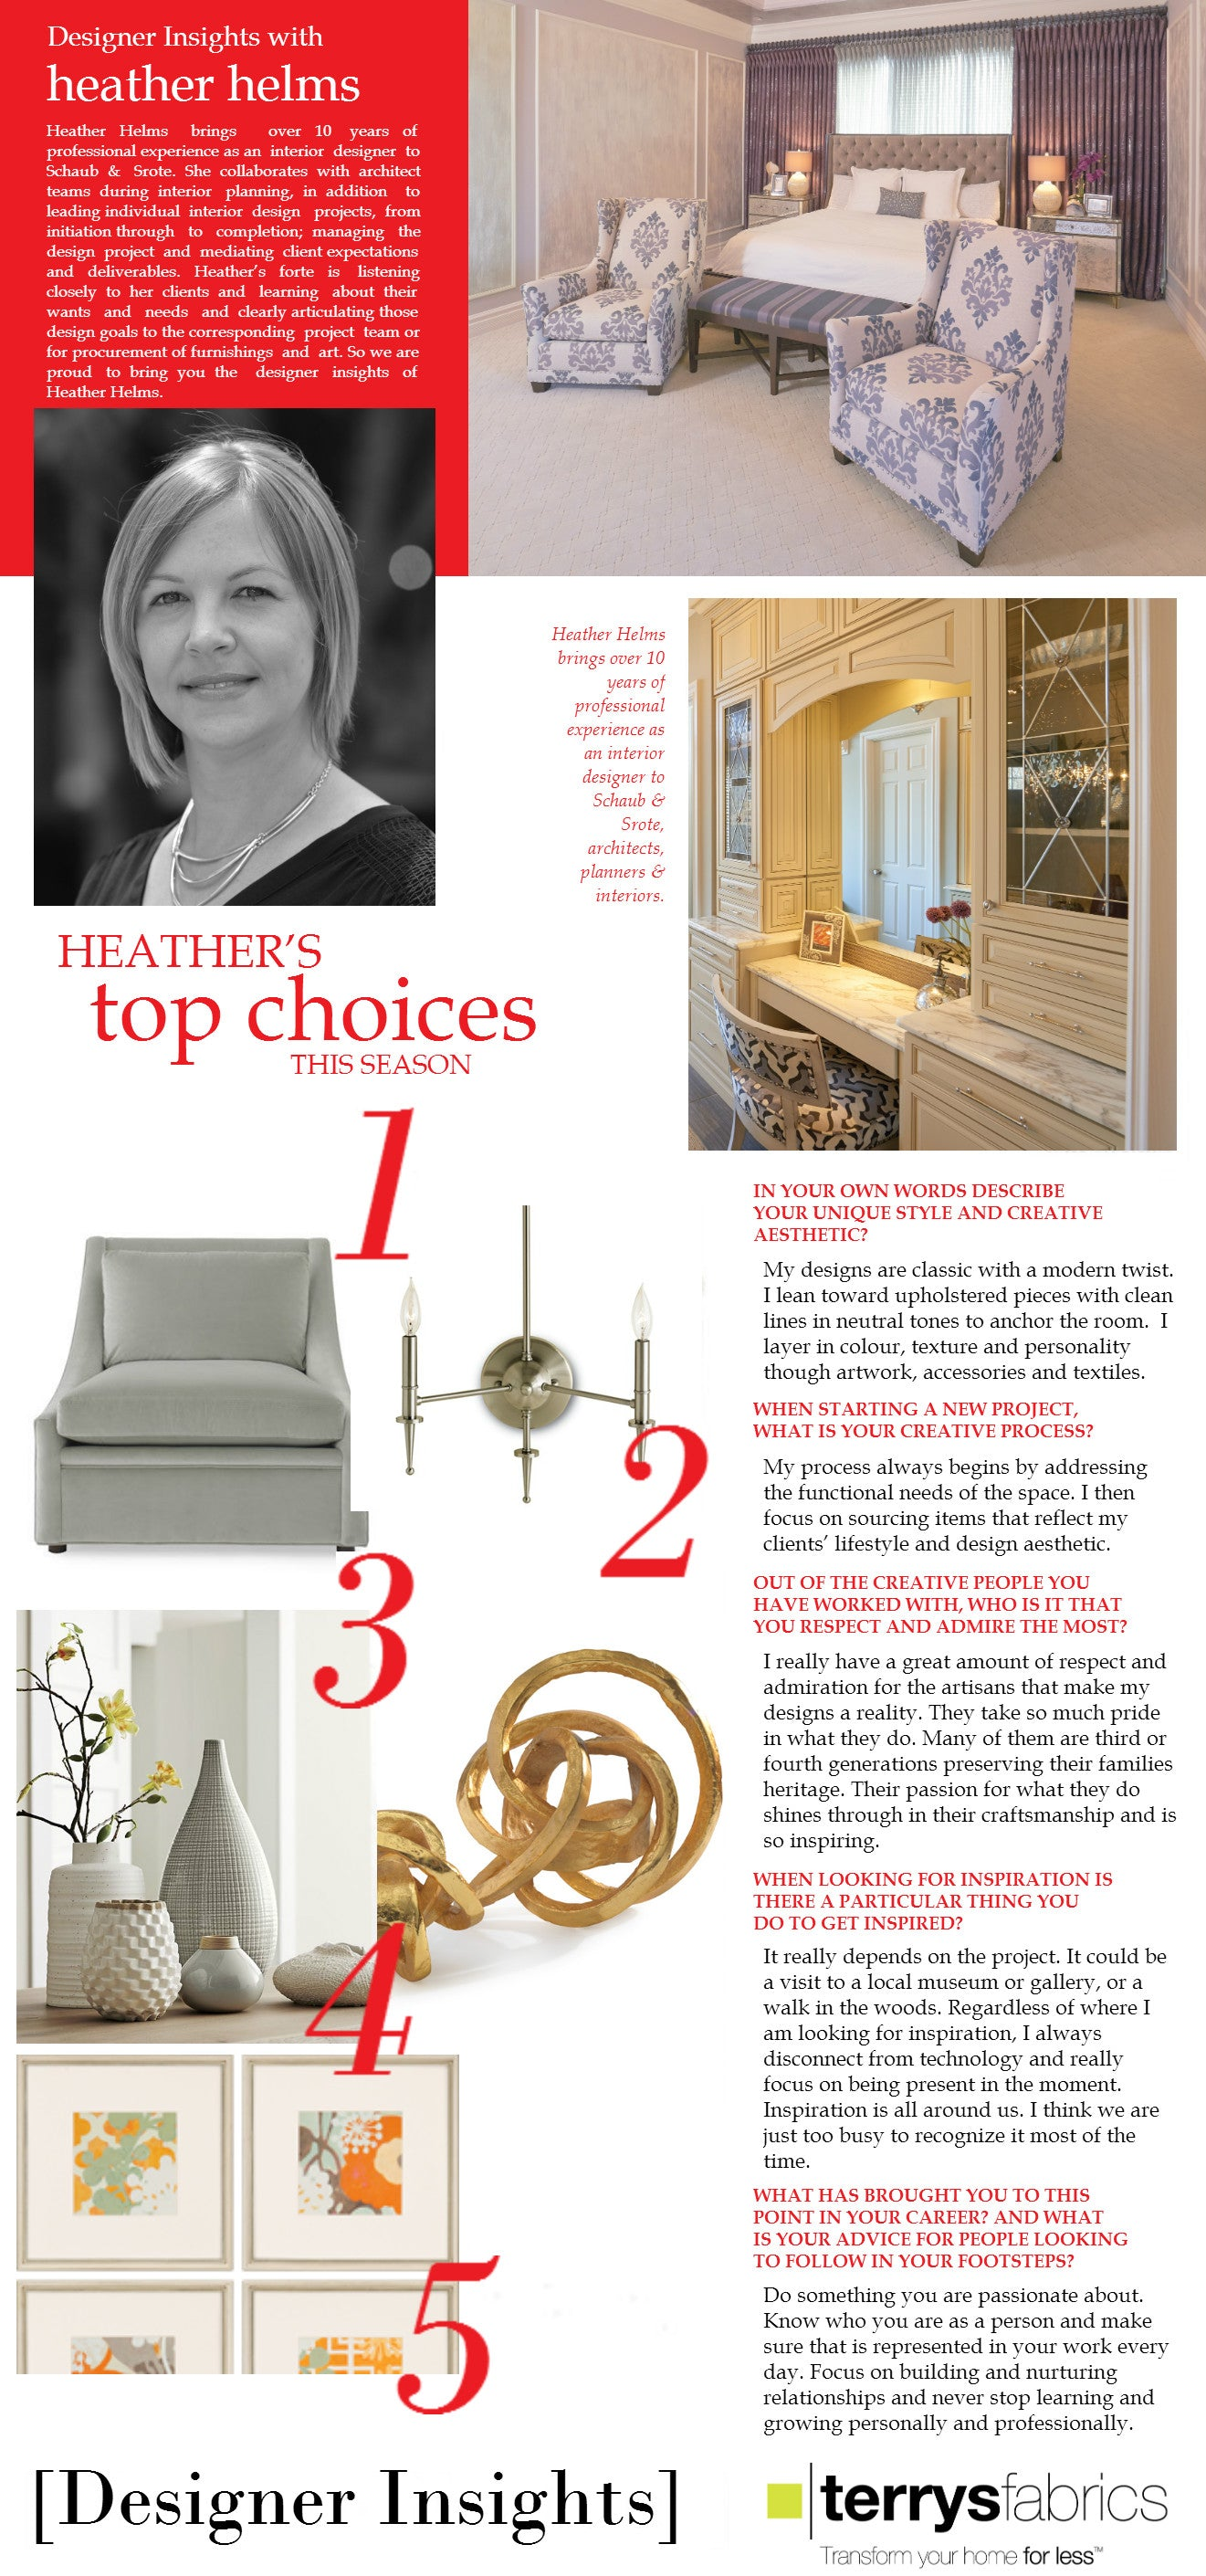 Designer Insights - Heather Helm of Schaub & Srote